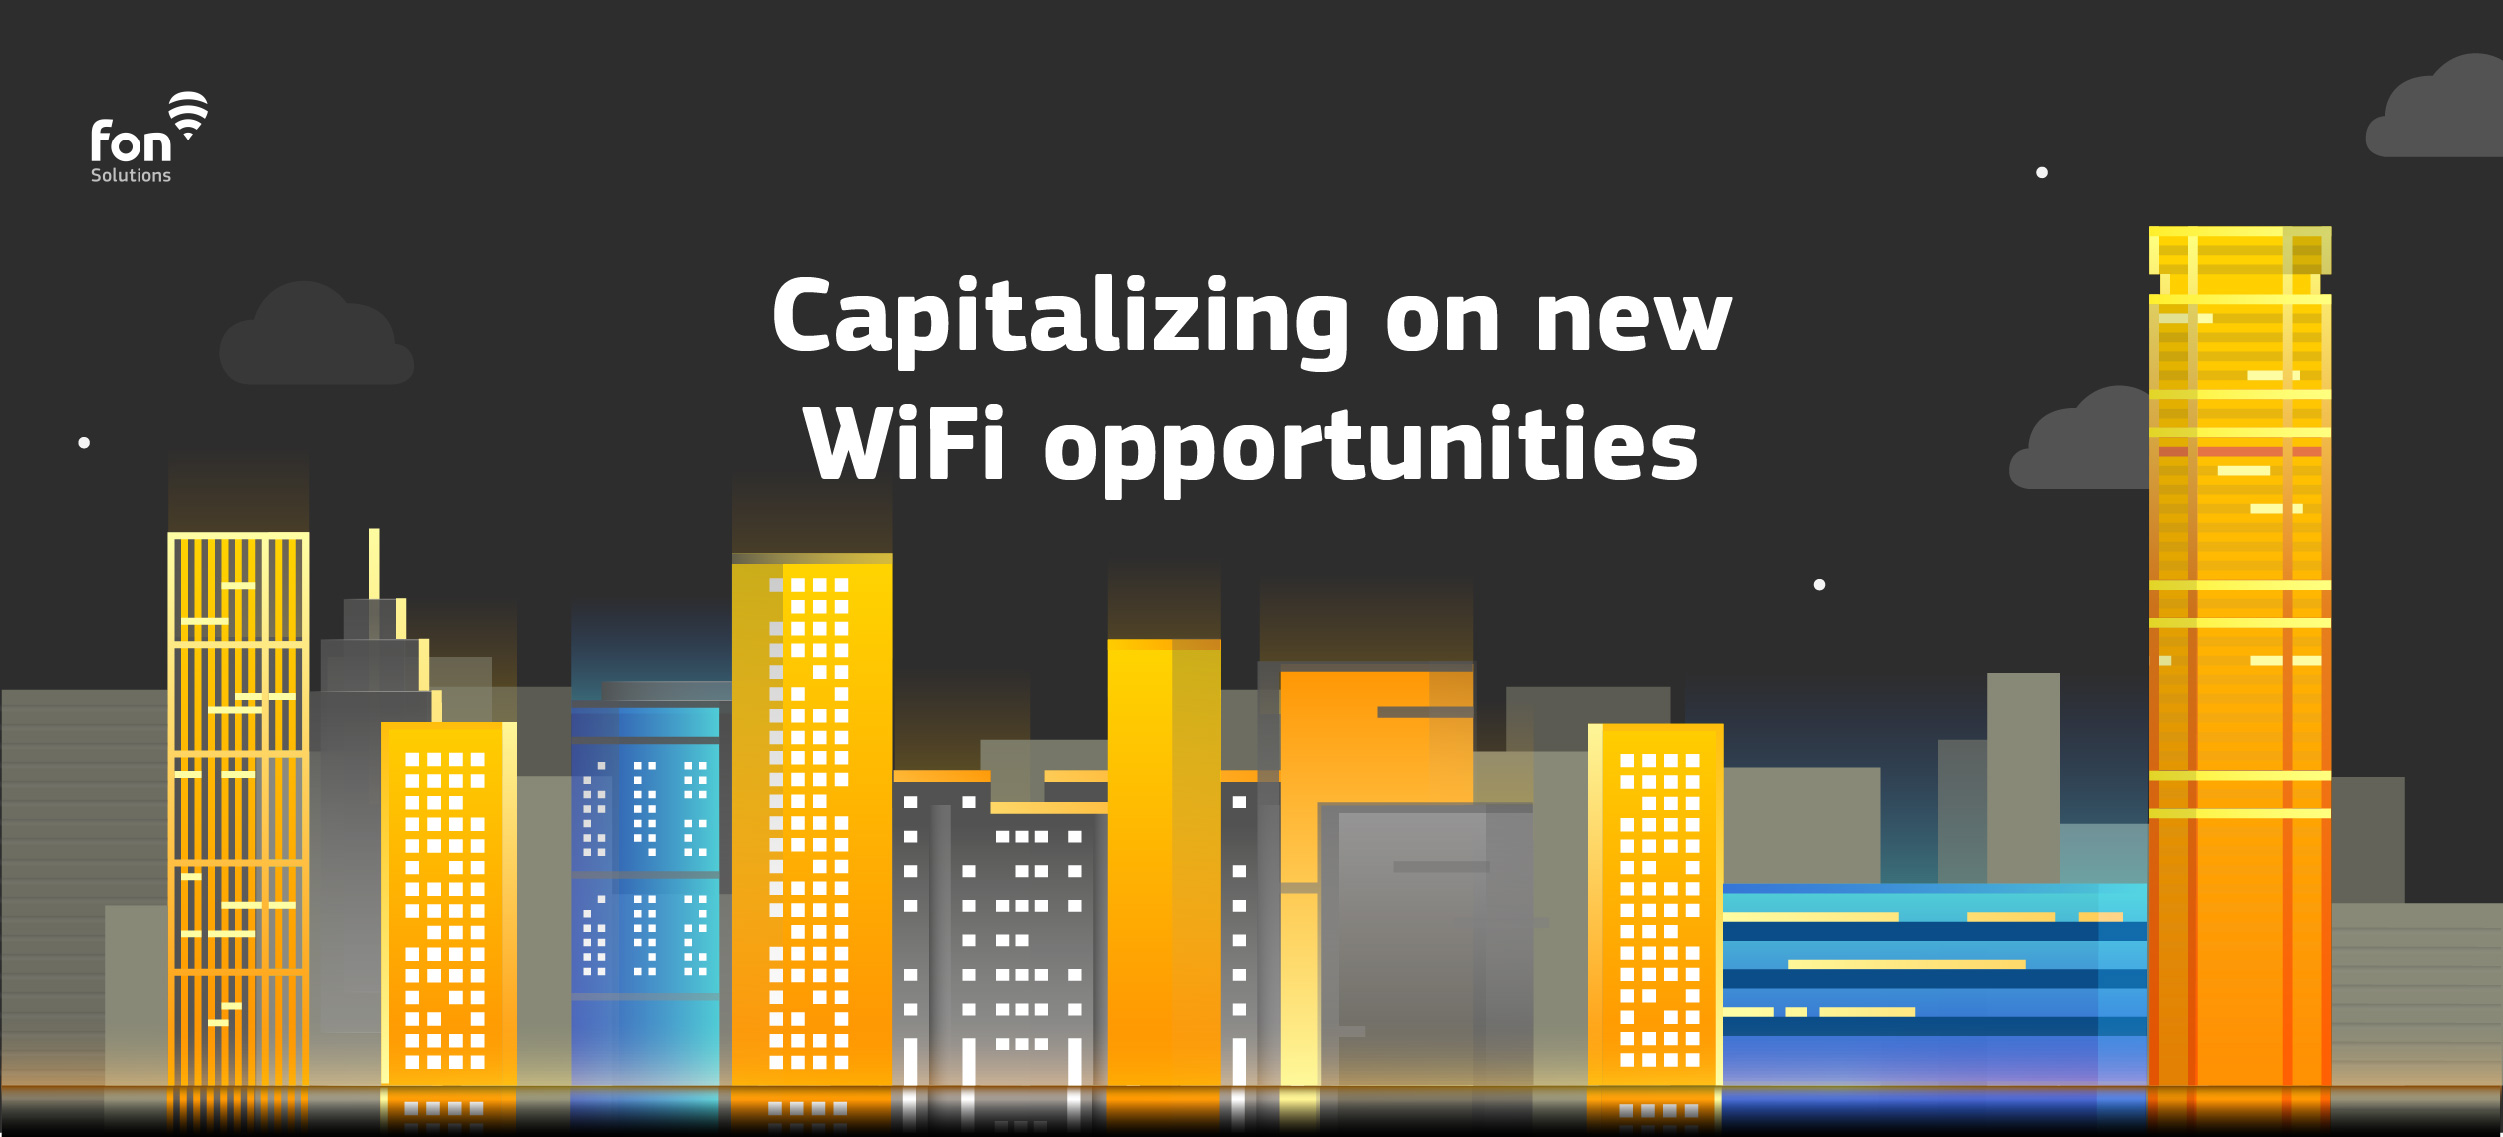 Are you capitalizing on new WiFi opportunities?